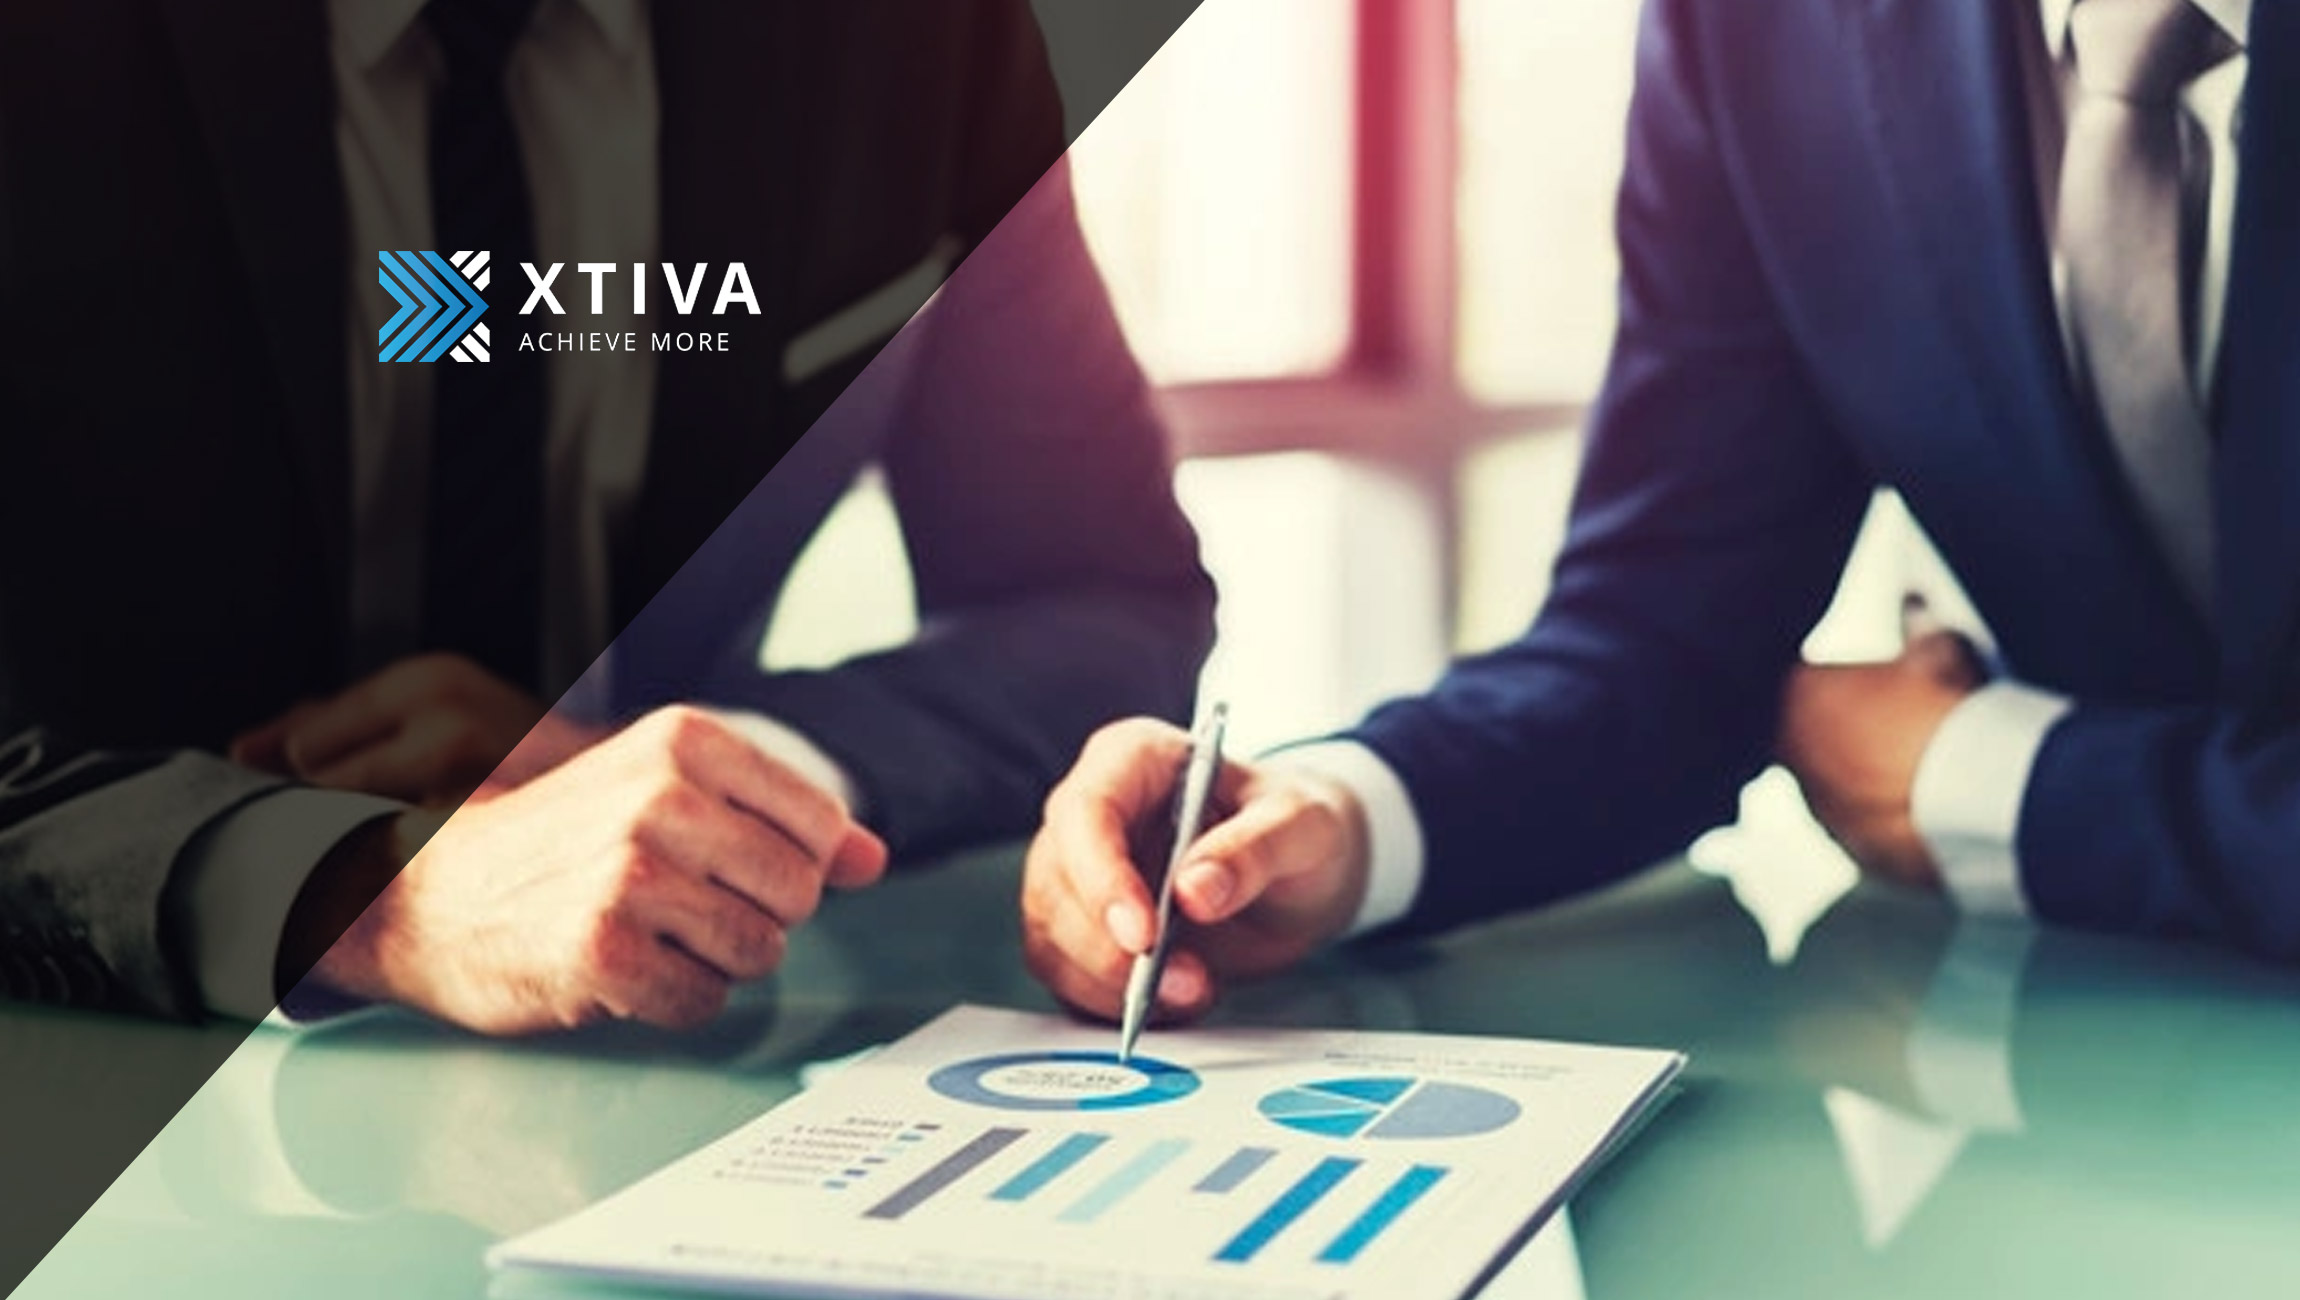 Xtiva and Whealthcare Solutions form strategic alliance to enhance wealth advisors' access to game changing tools for multigeneration success